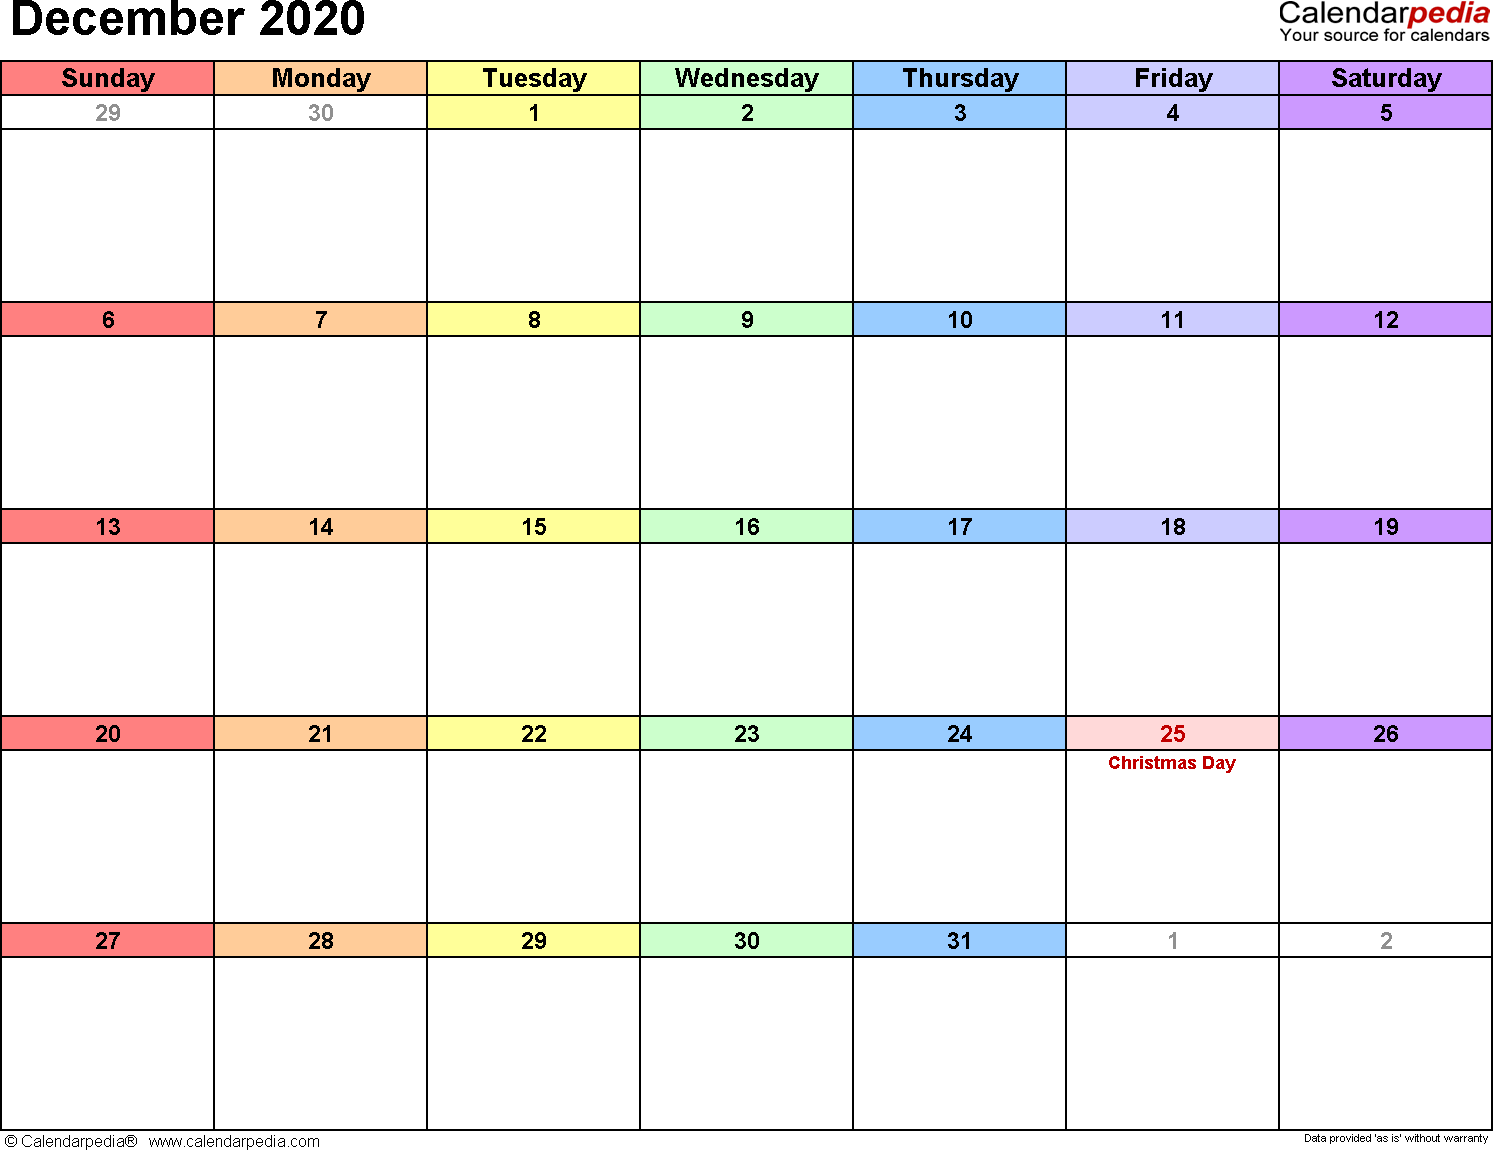 December 2020 Calendar Cust December 2020 Calendars for Word, Excel & PDF